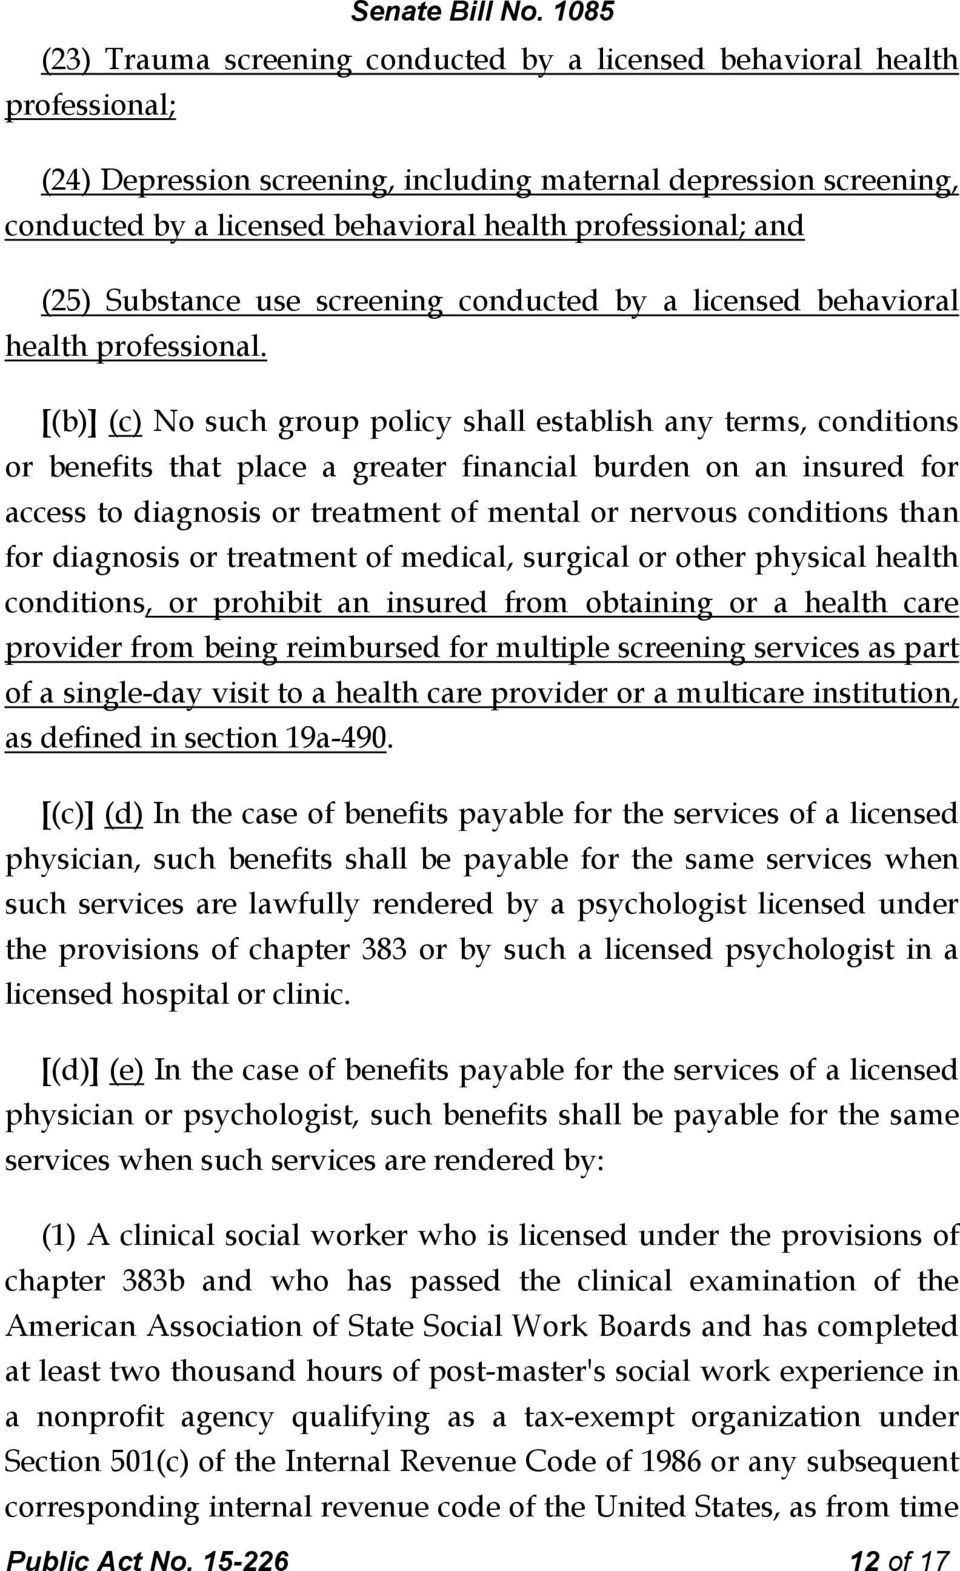 [(b)] (c) No such group policy shall establish any terms, conditions or benefits that place a greater financial burden on an insured for access to diagnosis or treatment of mental or nervous